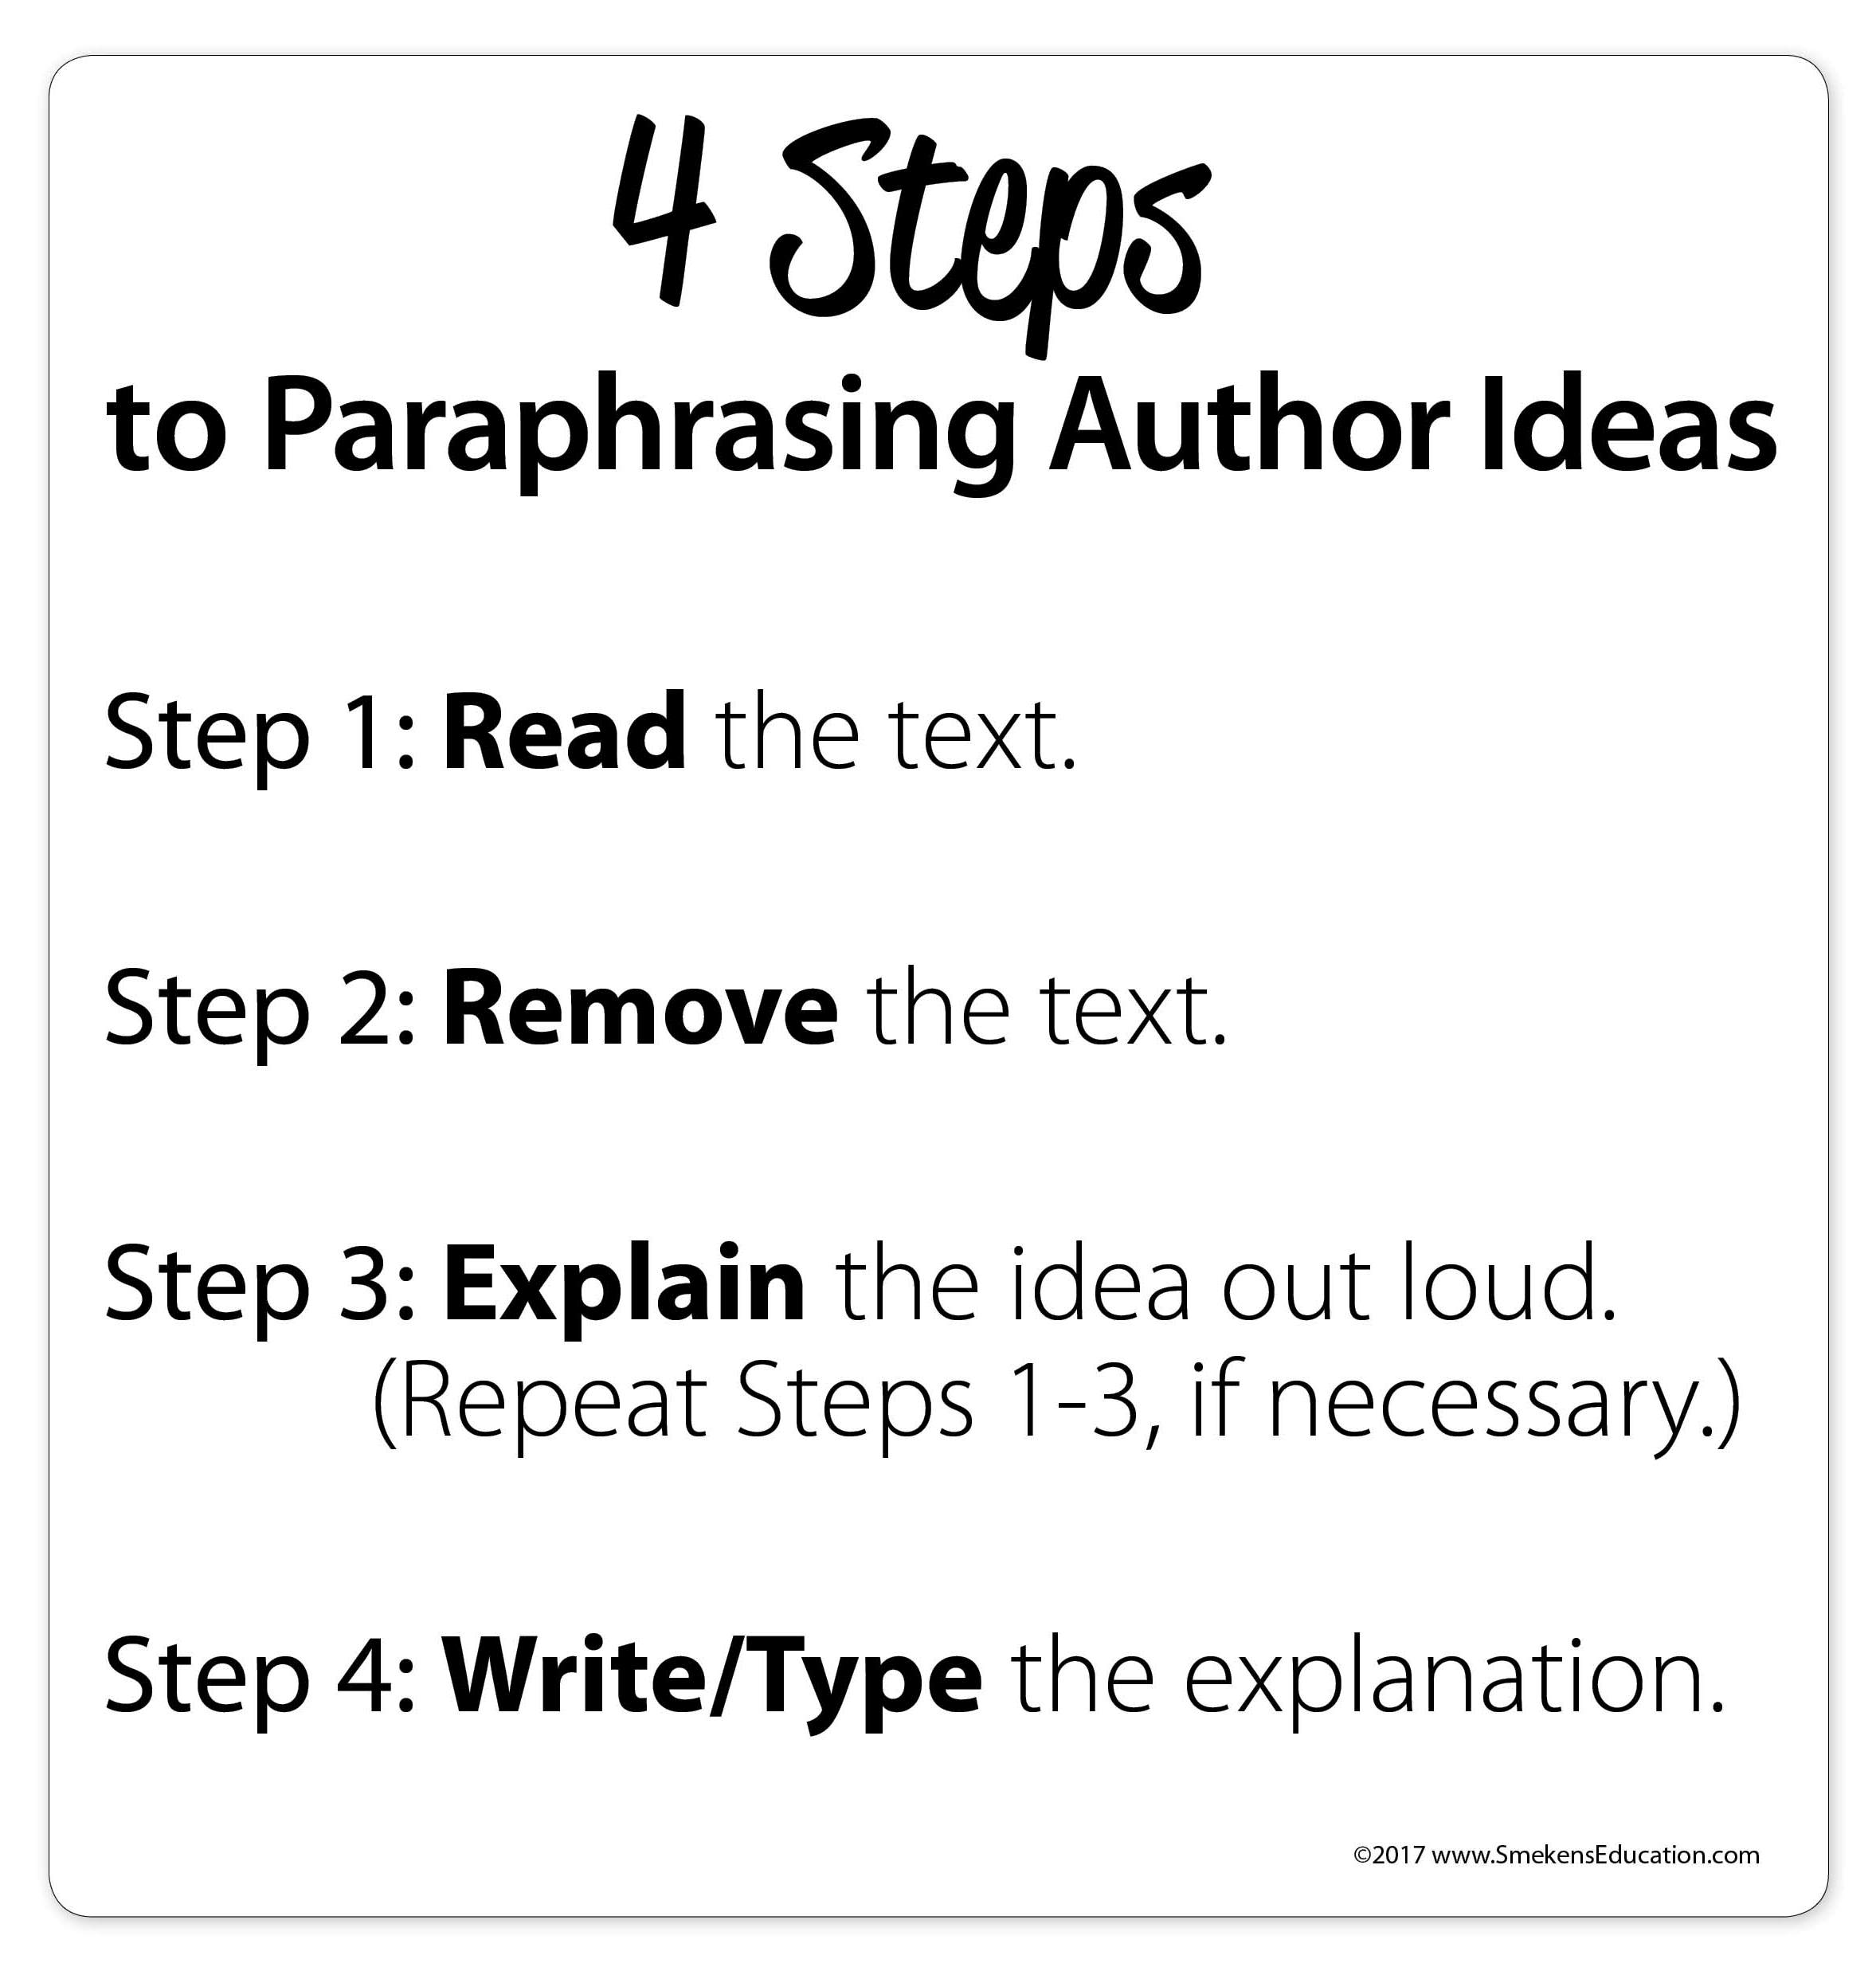 4 Steps to Paraphrasing Author Ideas